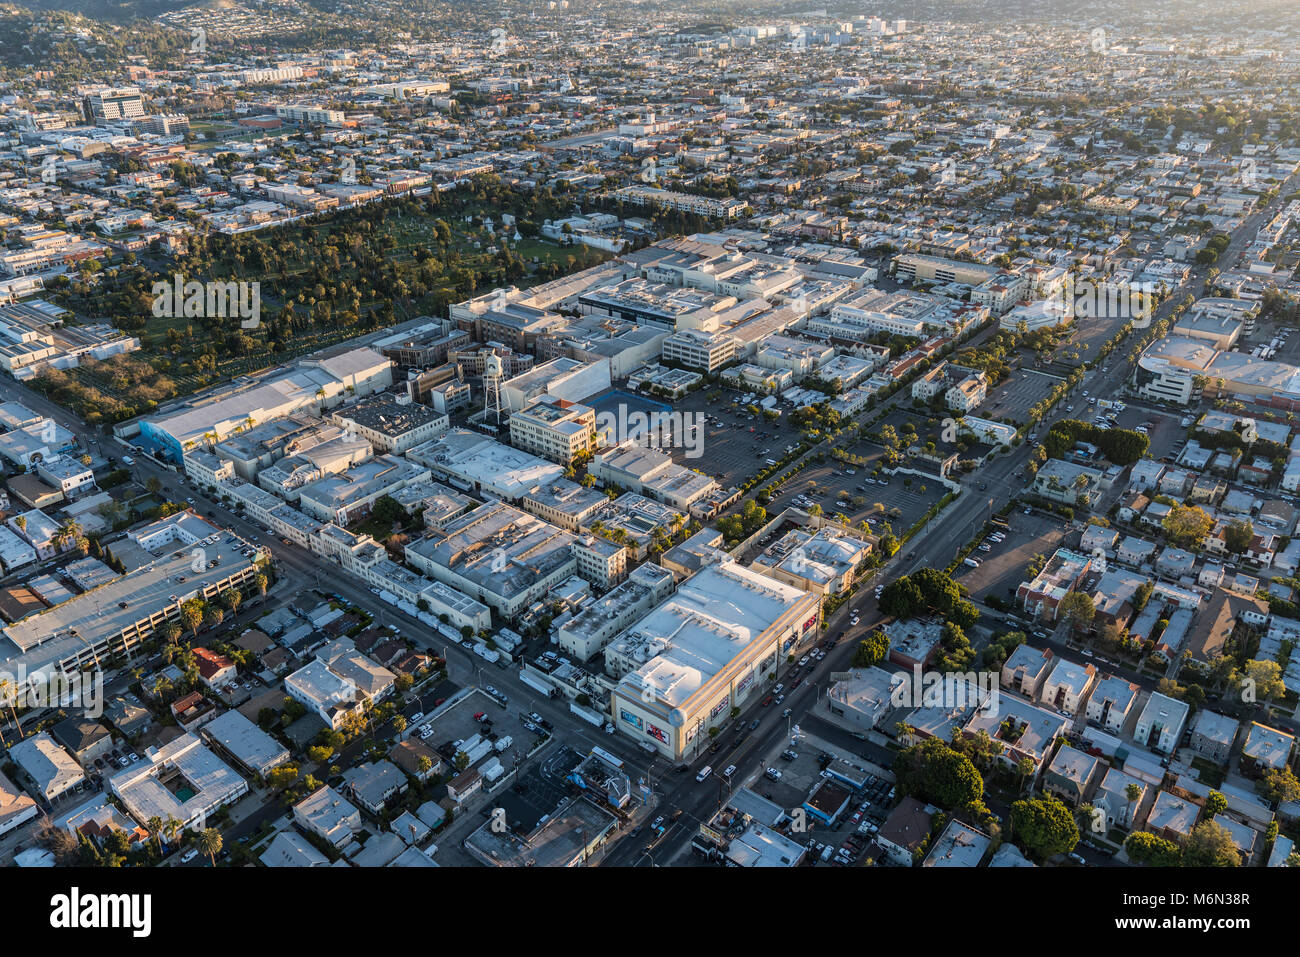 Los Angeles, California, USA - February 20, 2018:  Aerial view of Hollywood and Paramount Pictures Studio on Melrose - Stock Image